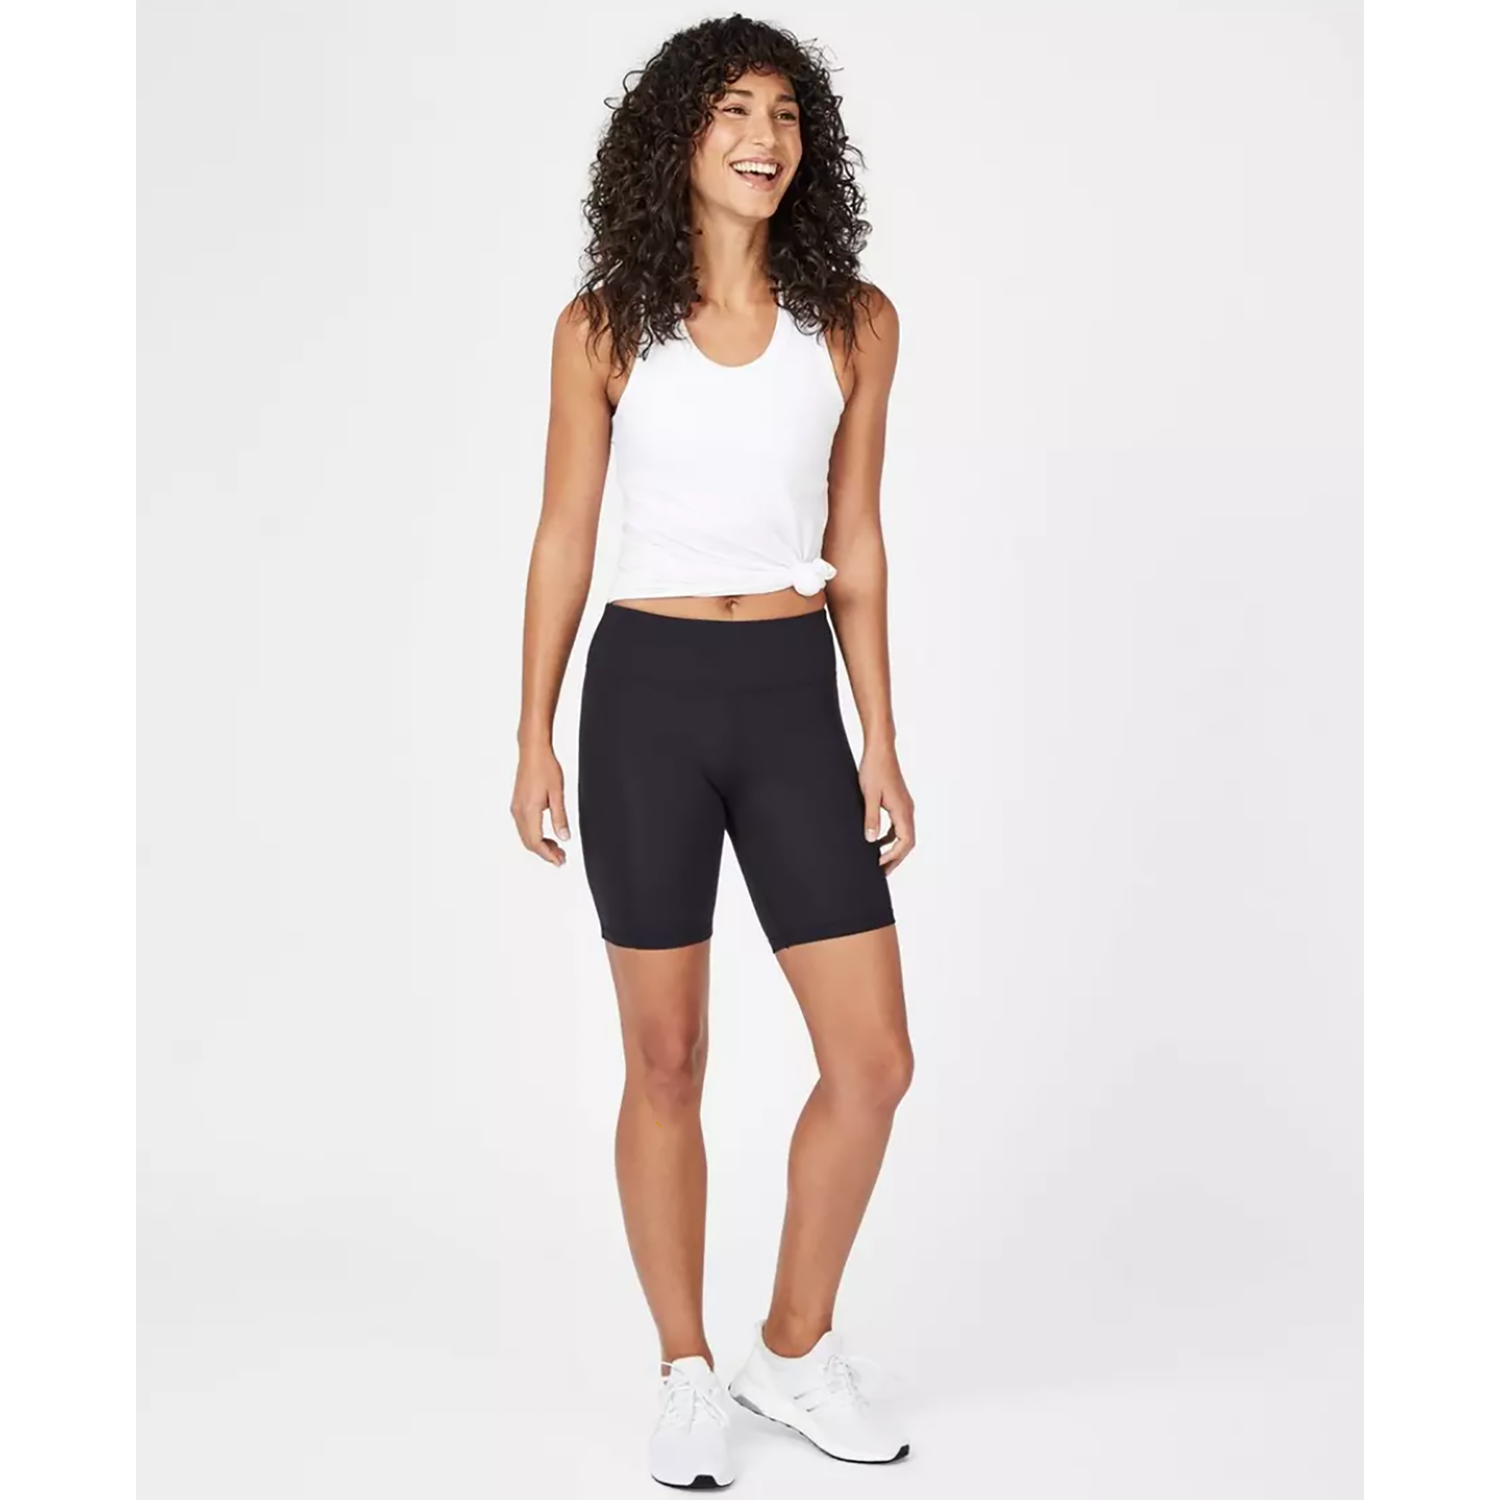 Whether you're in a heated room or striking a pose in a regular yoga class, these shorts dry super fast and feel lightweight enough to become your second skin. The soft material and option for a short cut or longer fit will keep your mind off messing with your outfit and instead focused on finding your calm. (Related: How to Style Bike Shorts Like a Fashion Blogger)